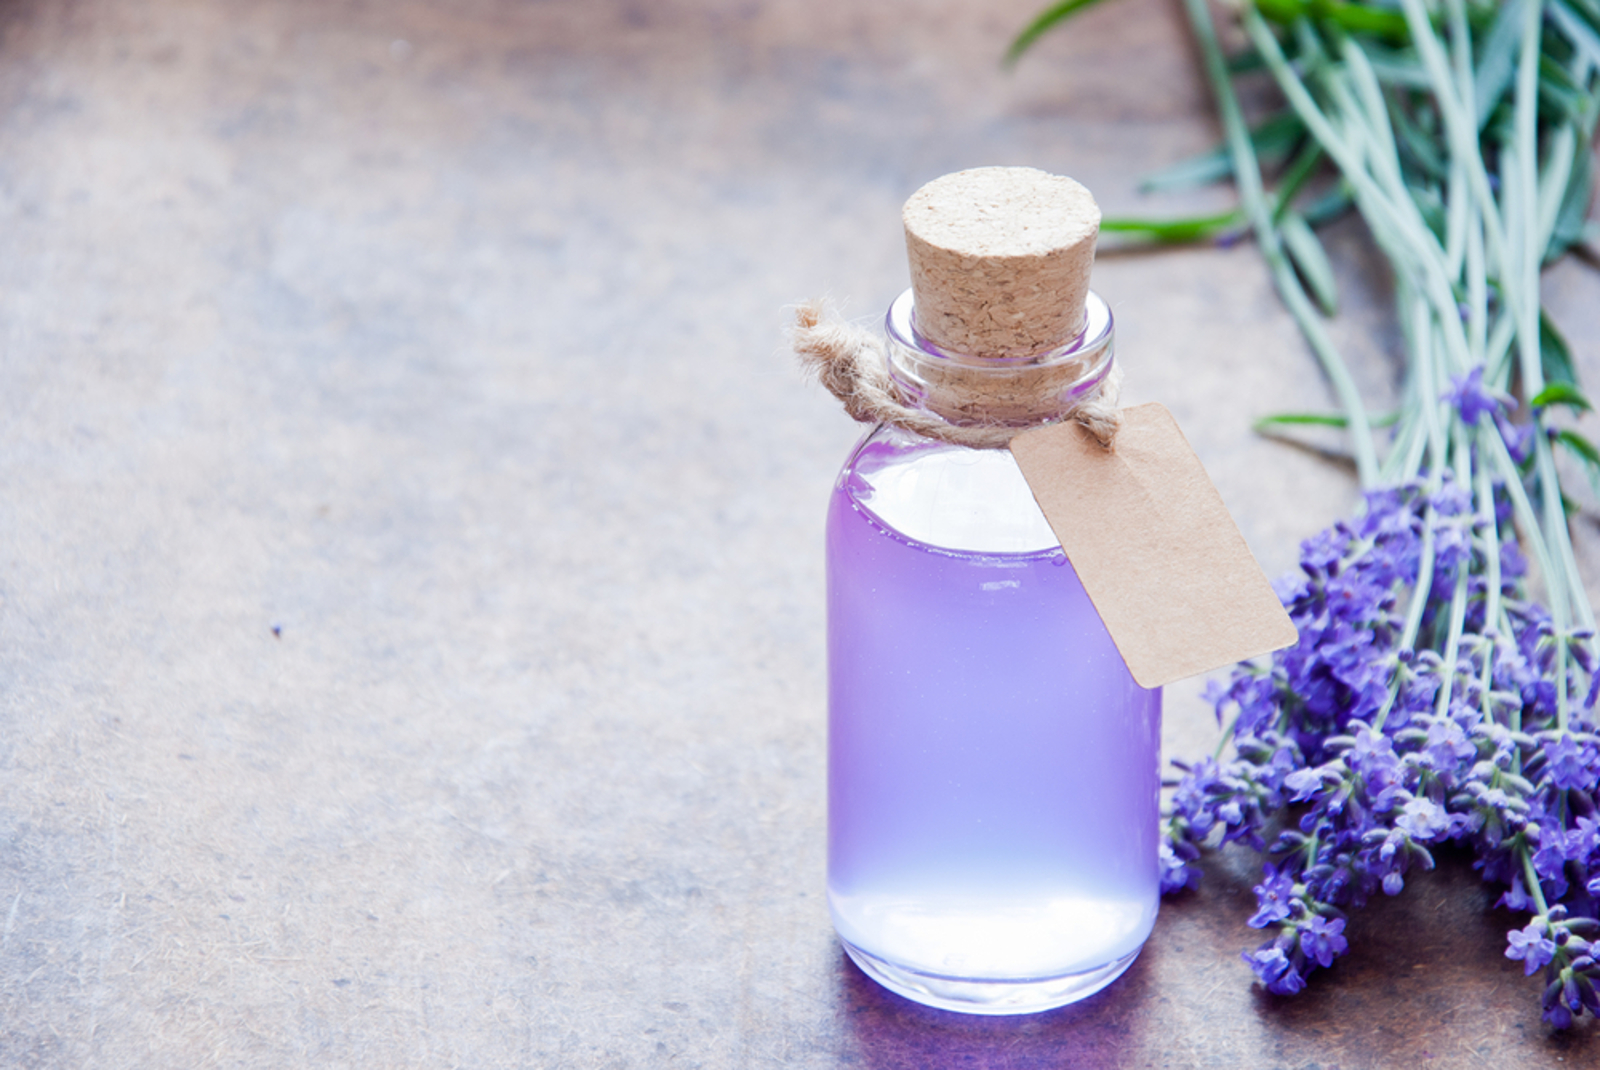 How to Make Your Own Chemical-Free DIY Hand Sanitizer